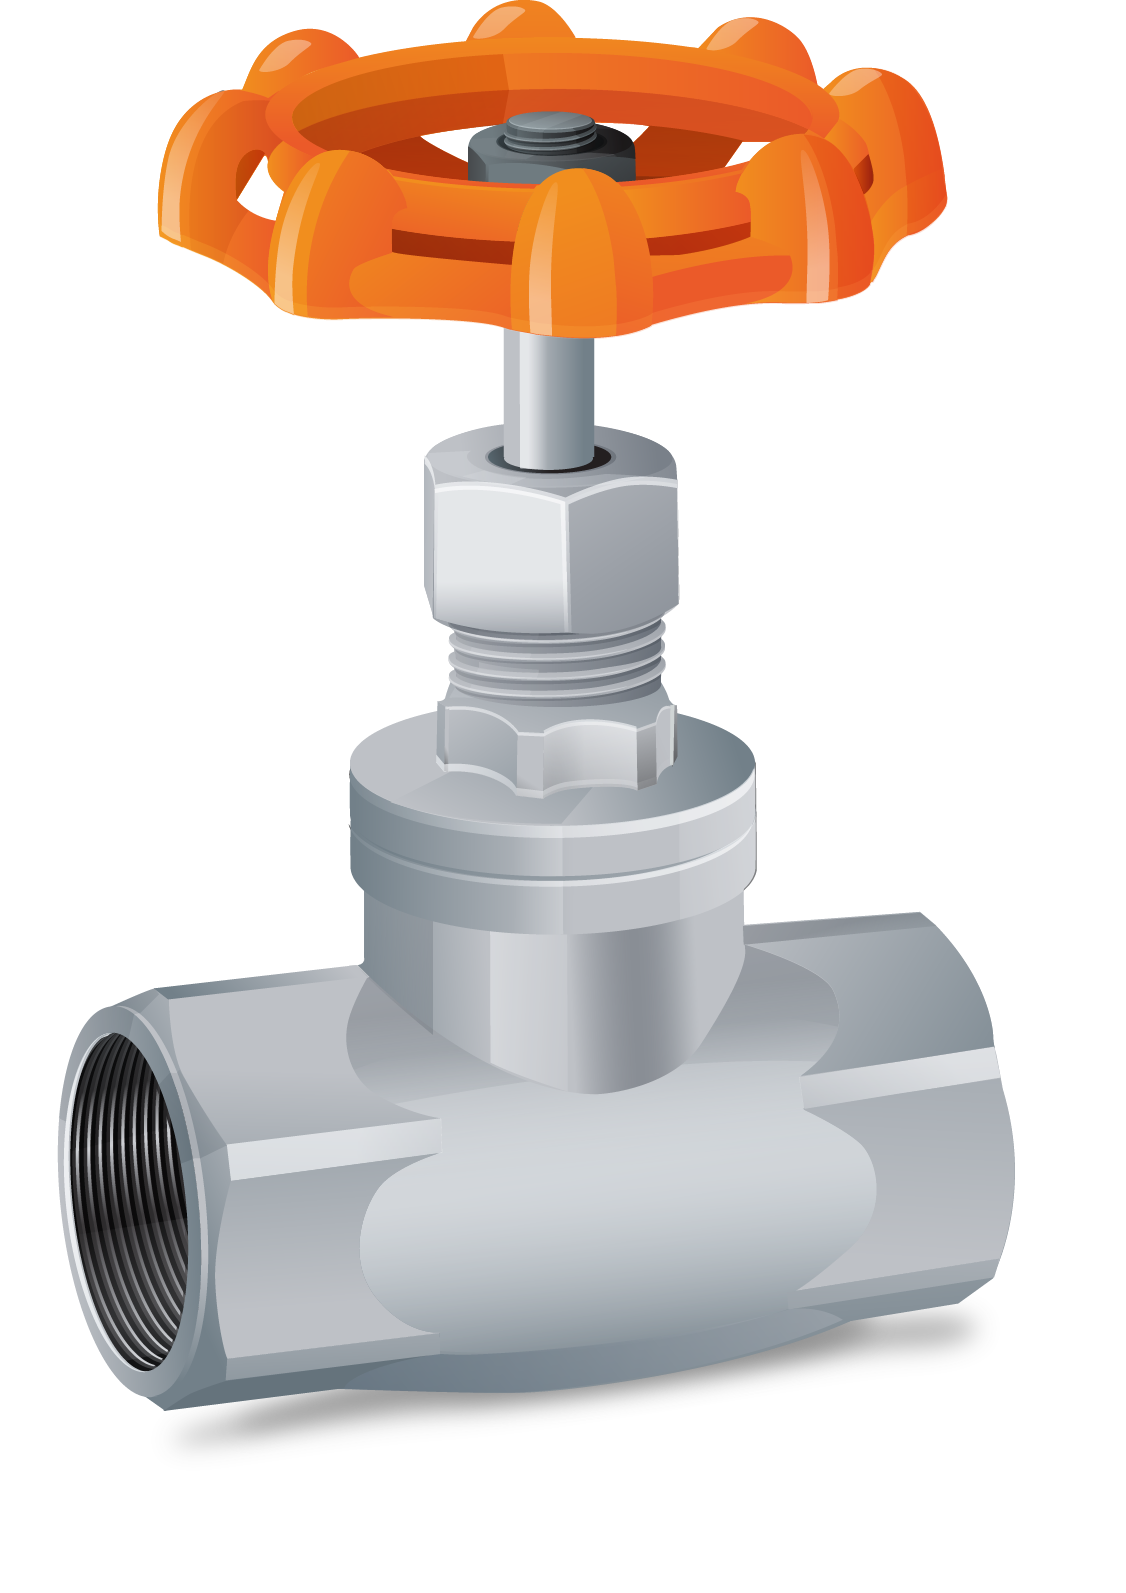 Pipe clipart valve. Globe suppliers and manufacturers